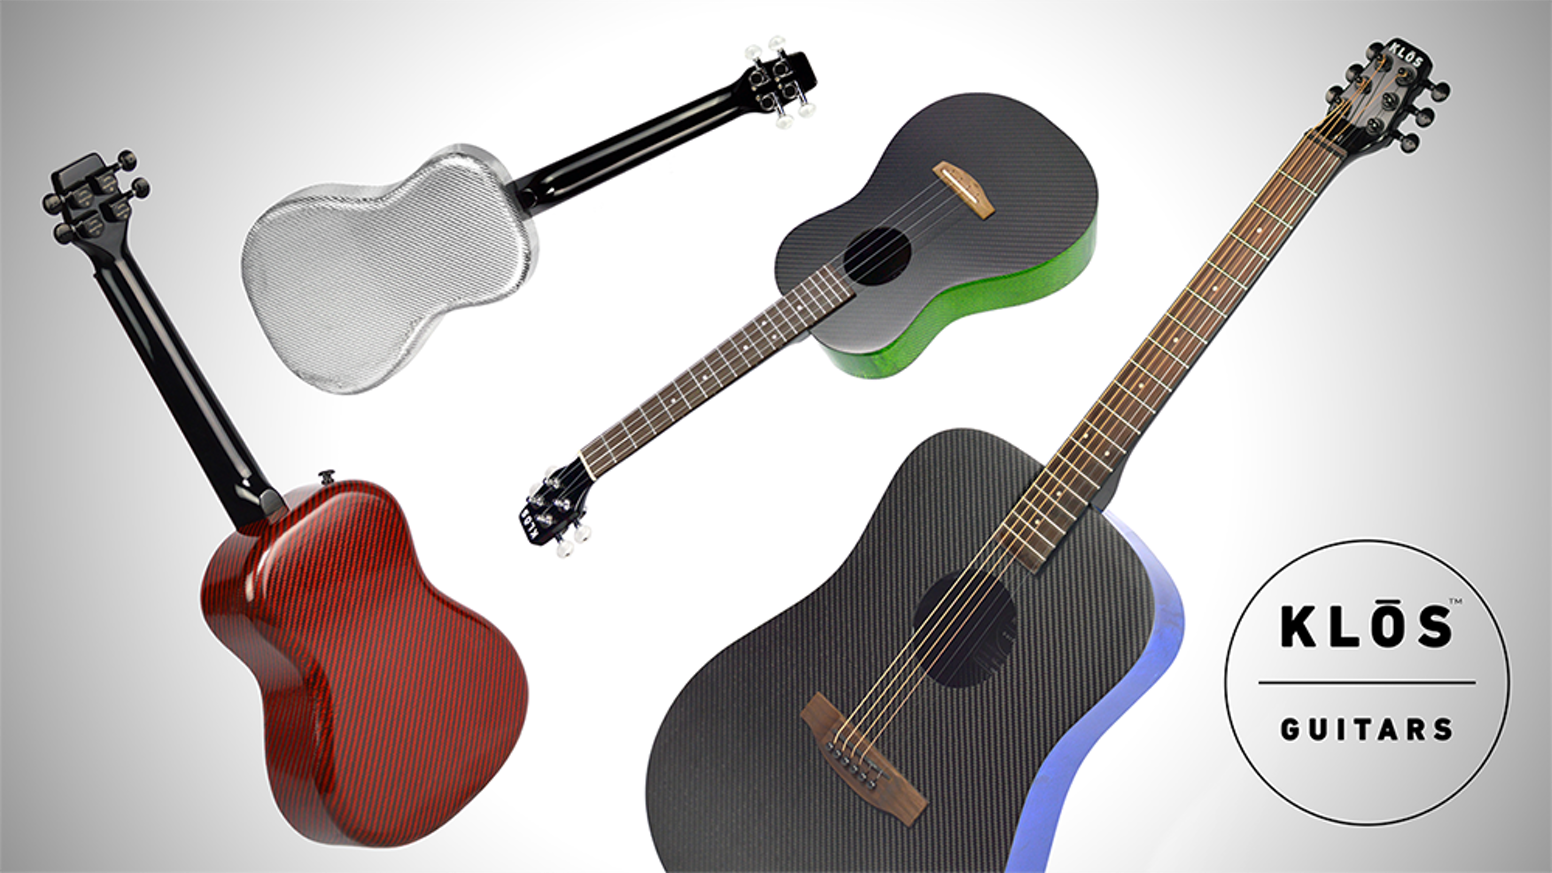 Carbon fiber ukuleles and full size dreadnought guitars in six different vibrant colors